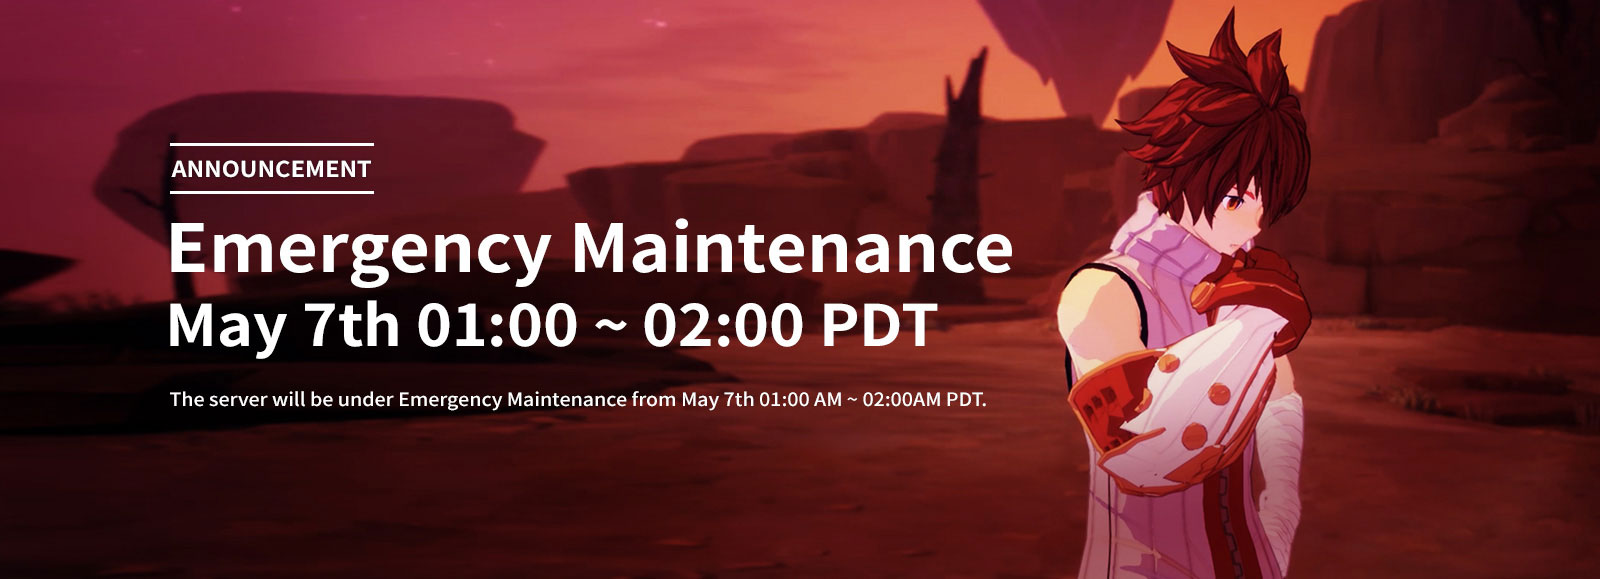 [Updated] May 7th Emergency Maintenance Announcement